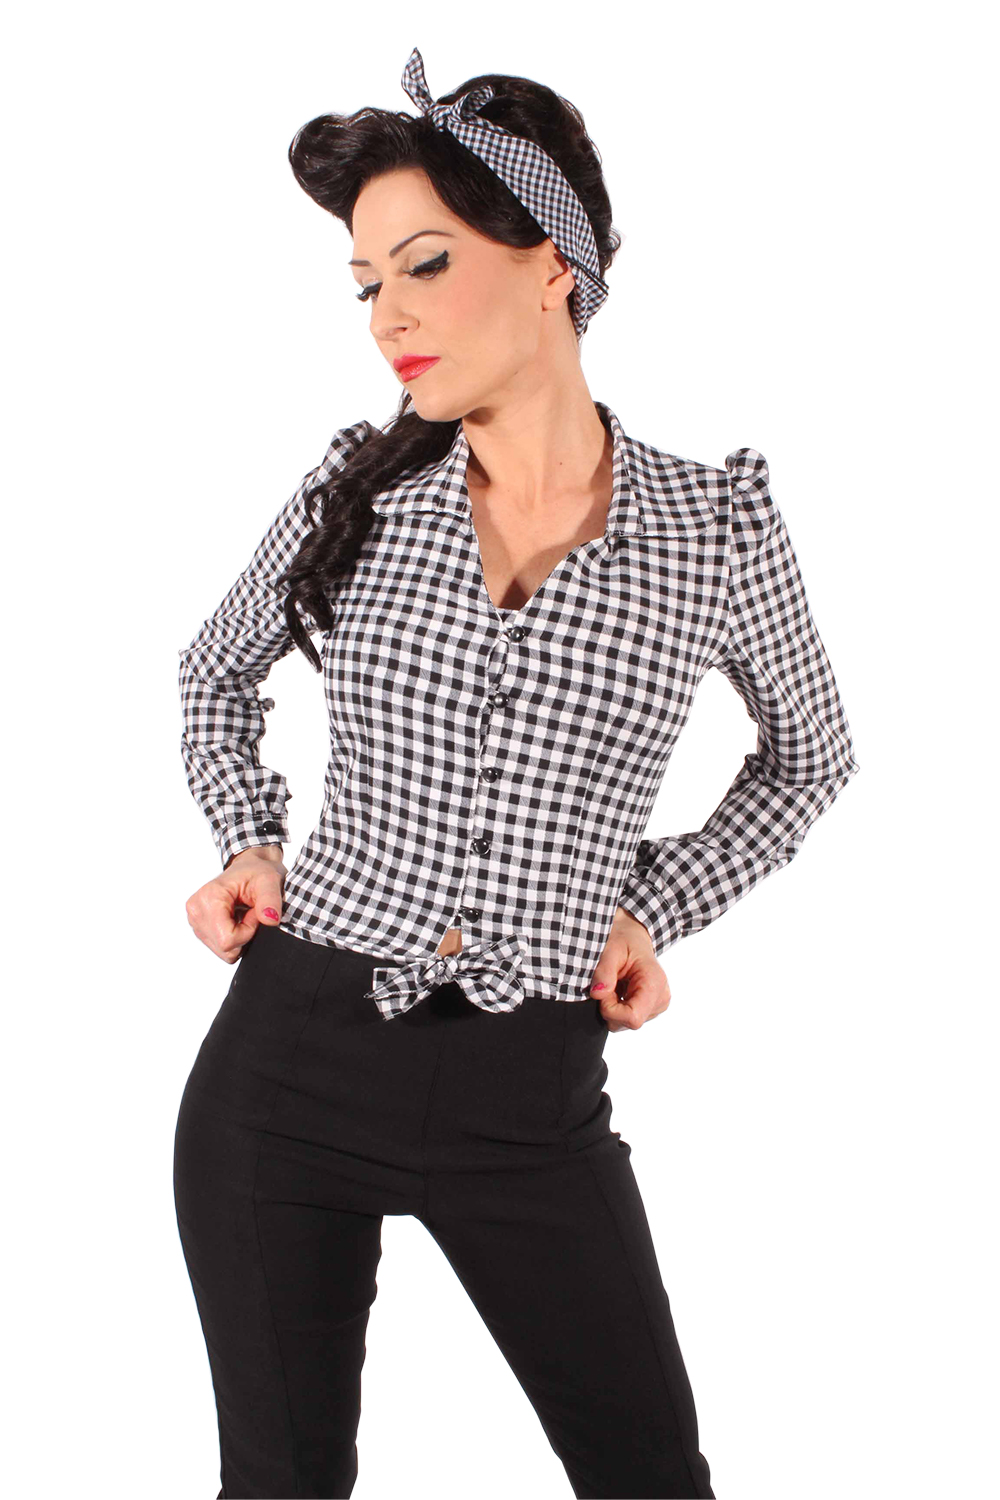 Gingham PIN UP retro rockabilly langarm Wickel Bluse Karo Kurzbluse